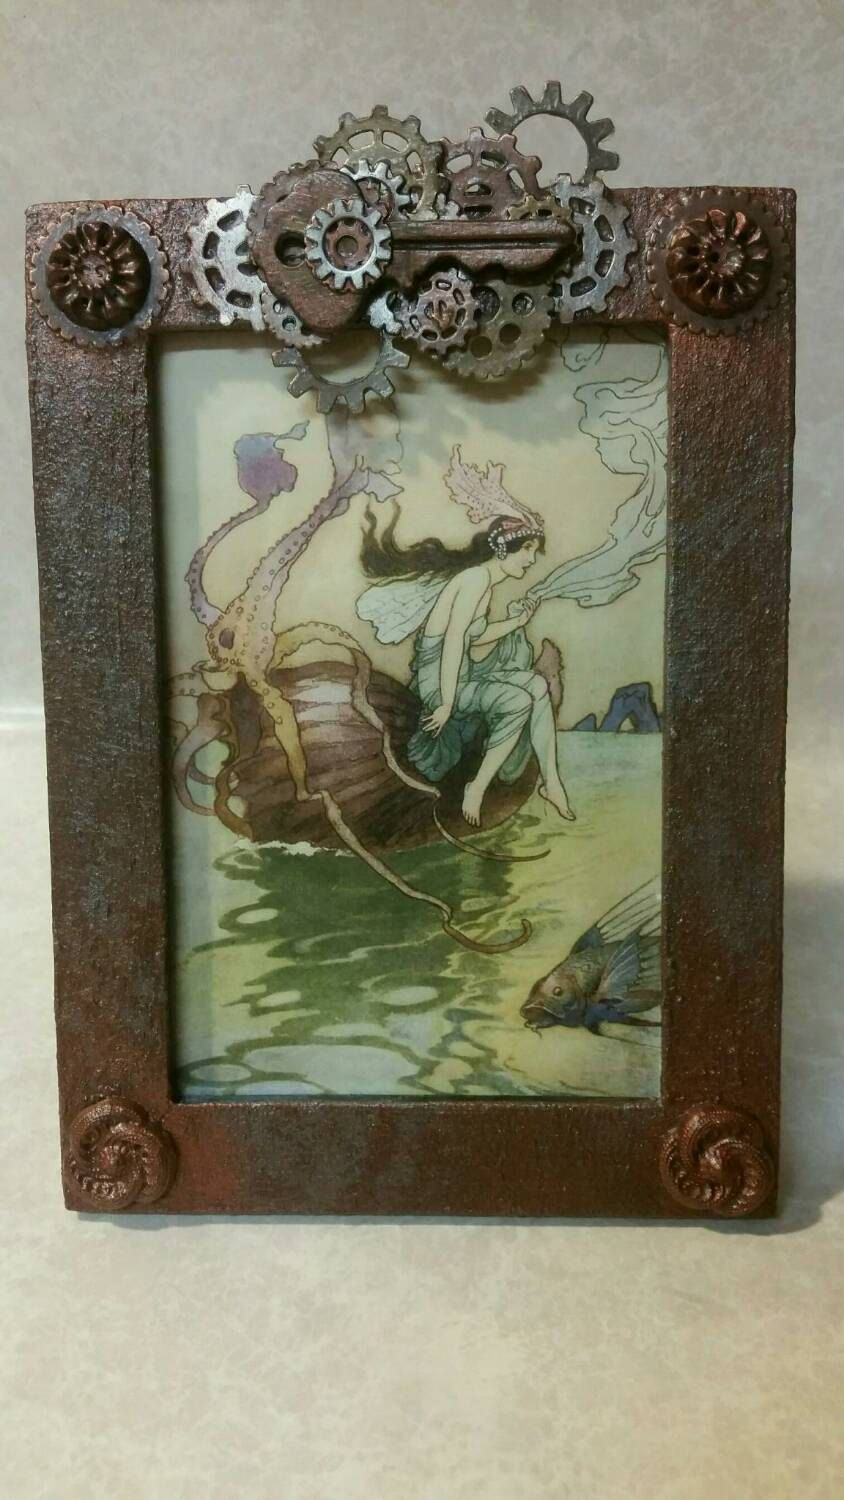 """Steam Punk Industrial Embellished Painted, Key, Cogs, Gears, Sprockets Picture Frame 3 1/2 X 5"""" by ValhallaSisters on Etsy"""